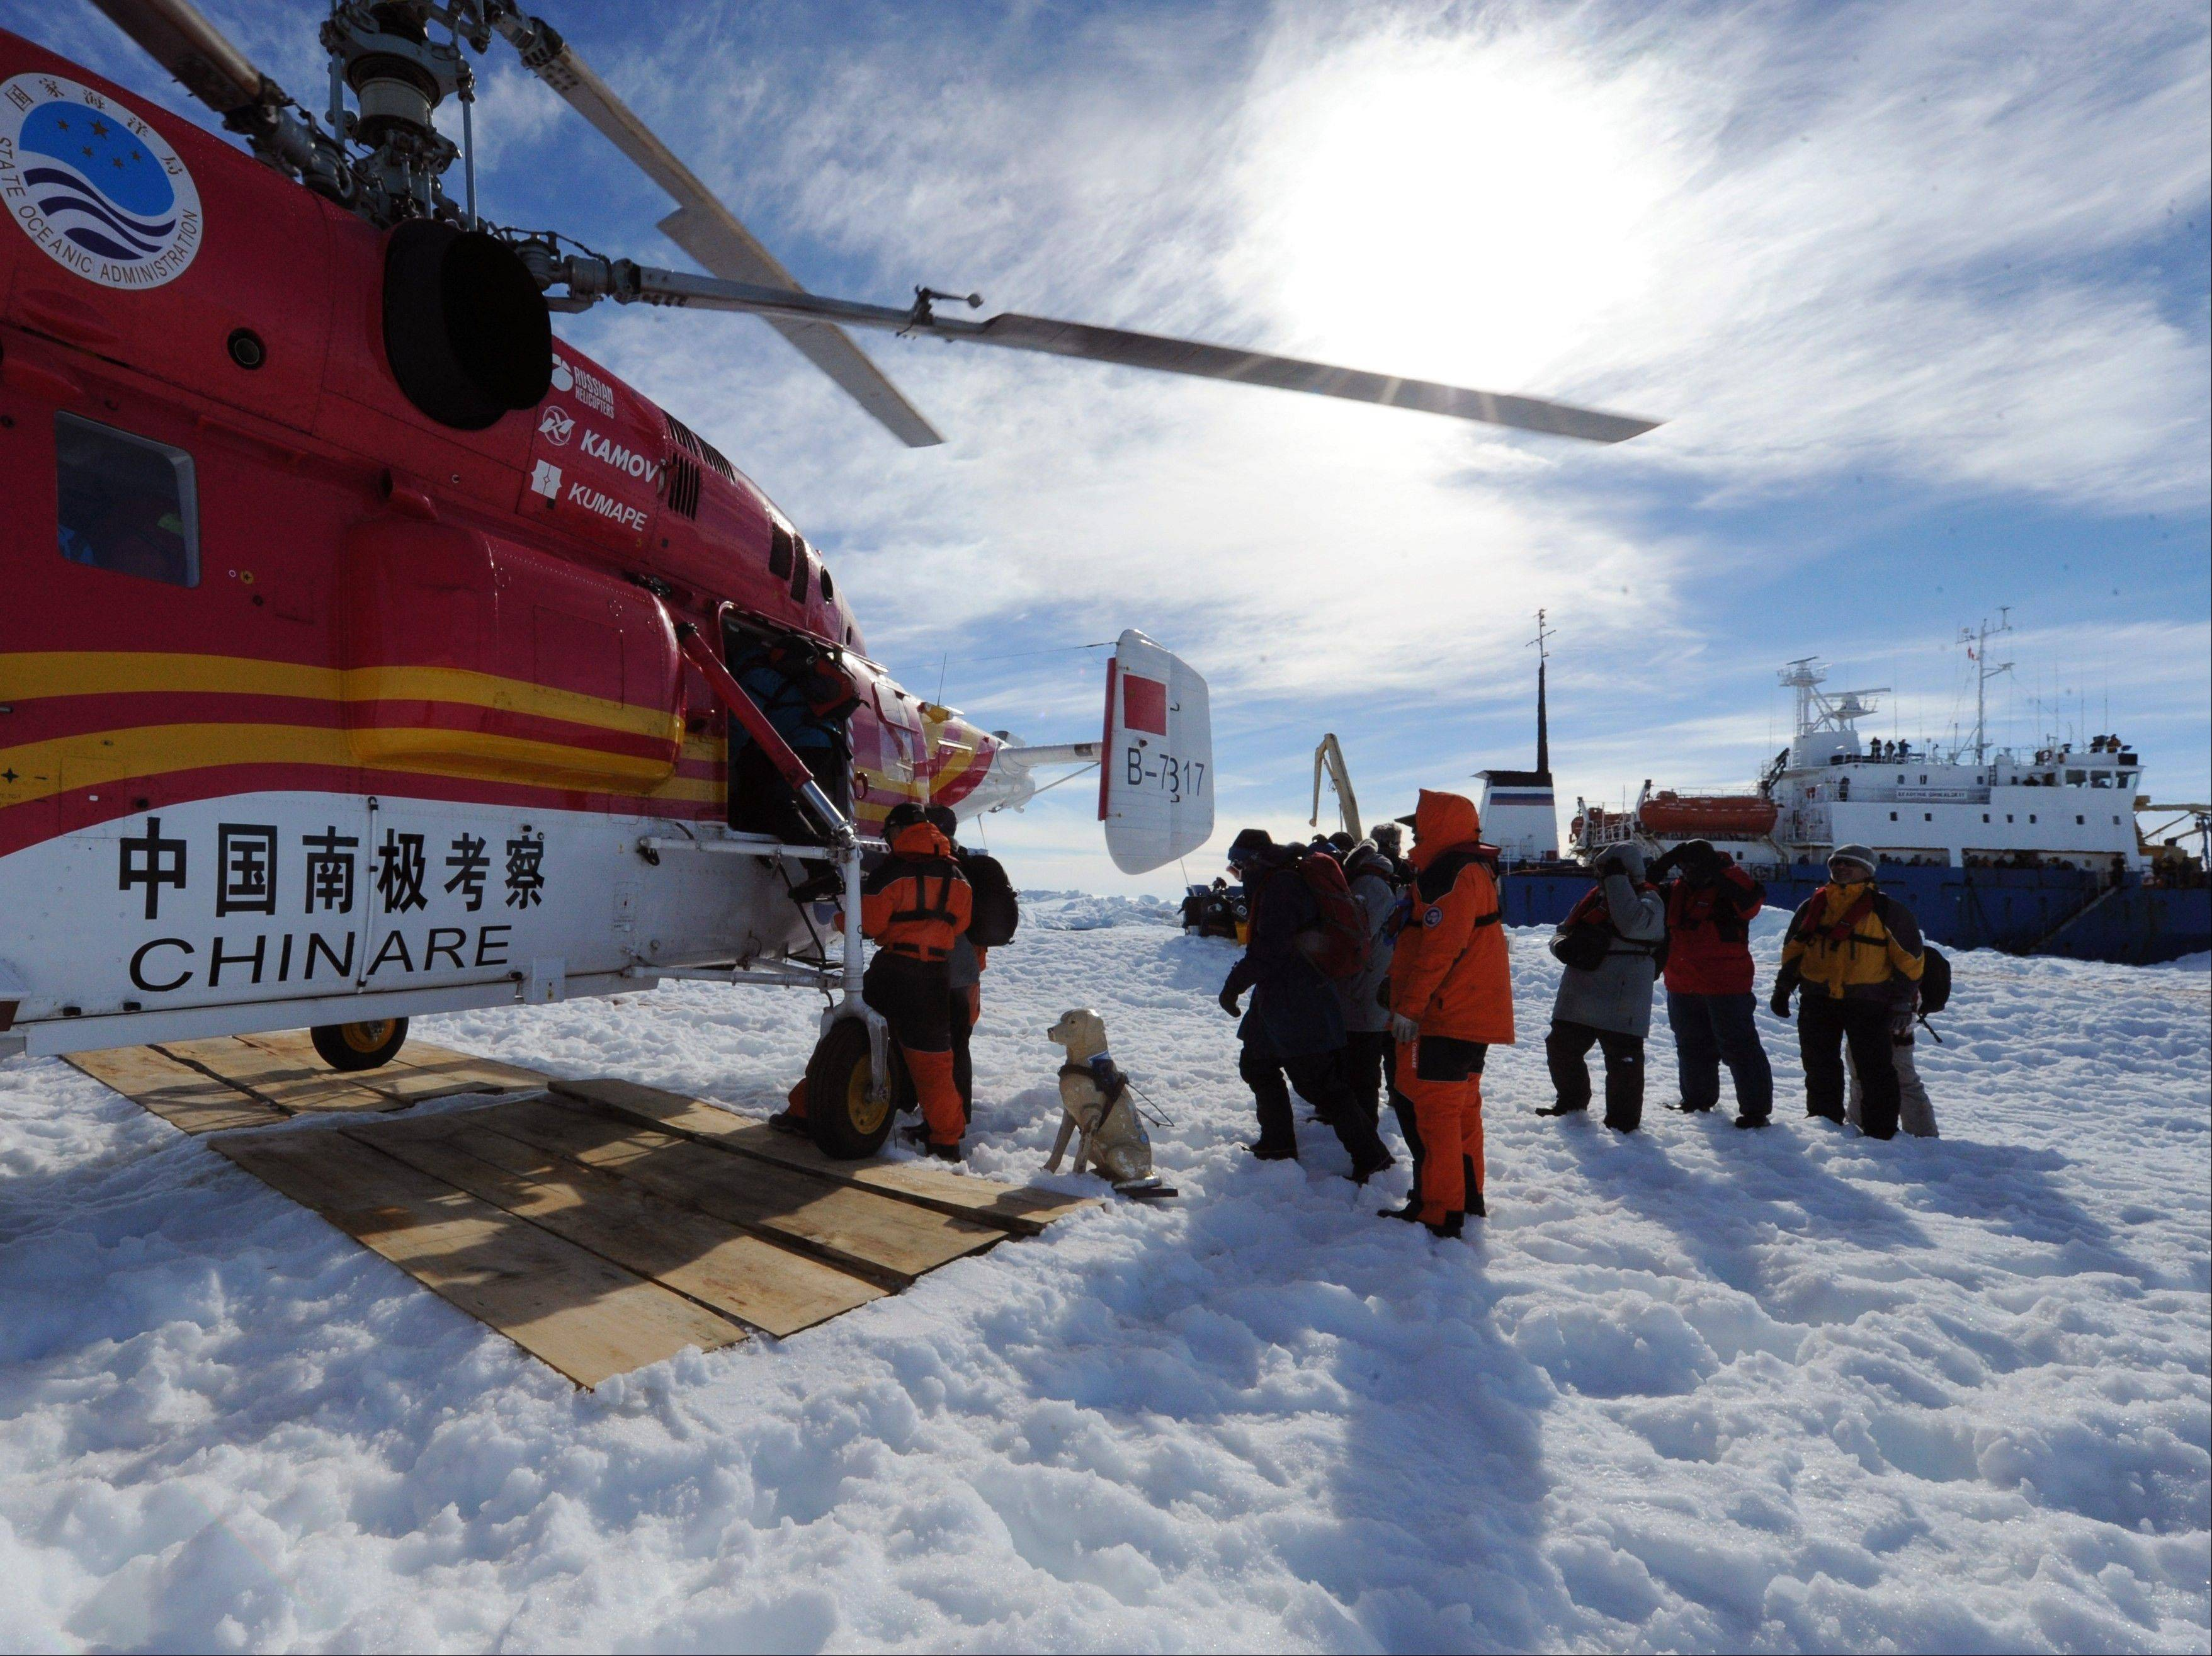 Passengers from the trapped Russian vessel MV Akademik Shokalskiy, seen at right, prepare to board a Chinese helicopter in the Antarctic Thursday. All 52 passengers from the research ship that has been trapped in Antarctic ice were airlifted to safety after weather conditions finally cleared enough for the operation.